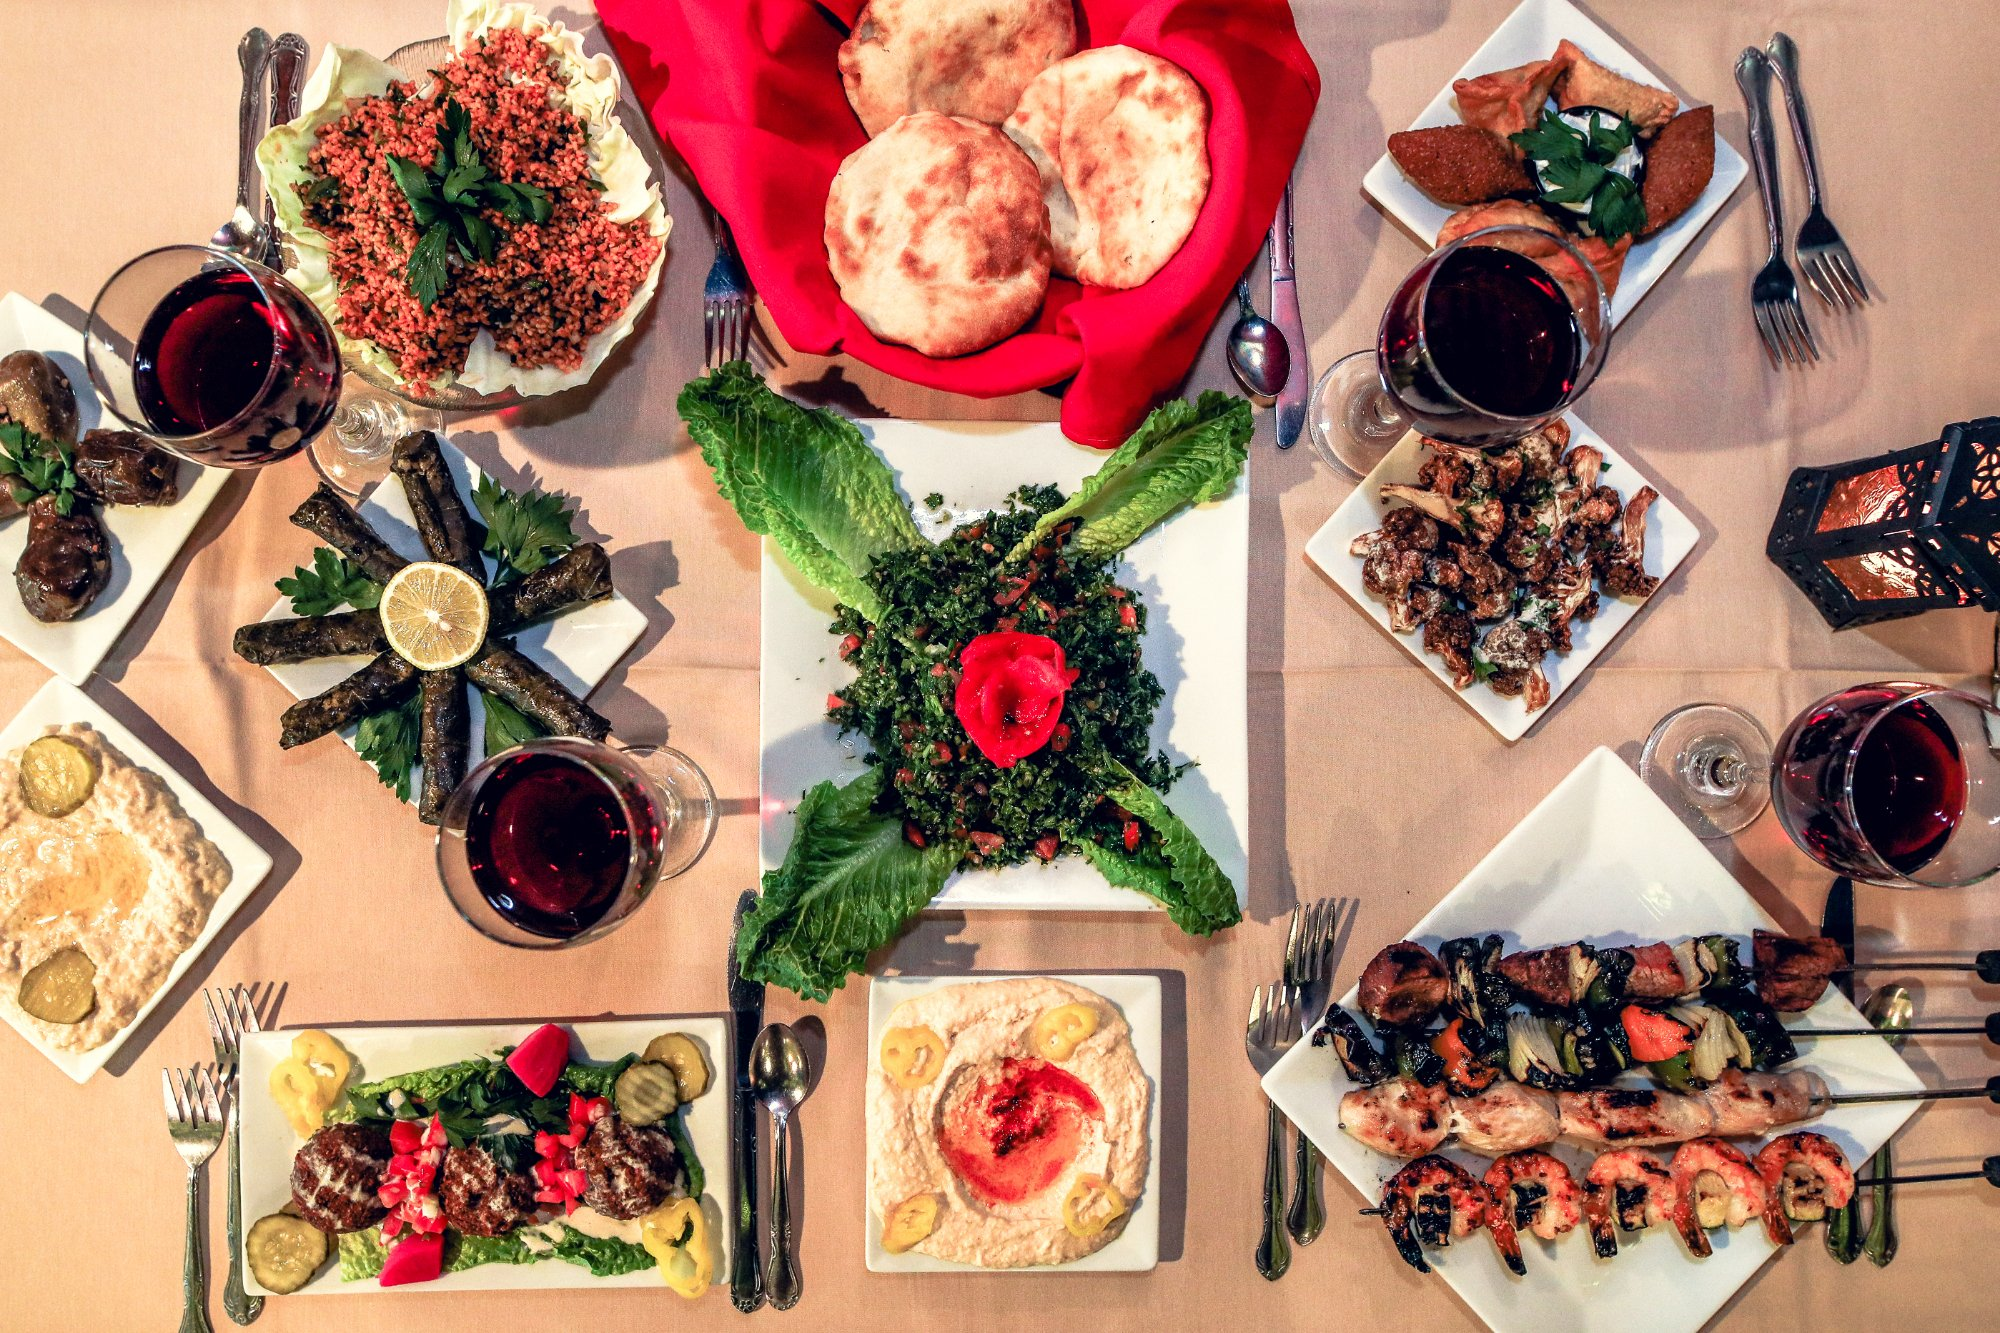 Where to eat Mediterranean food in Catasauqua: The Best Restaurants and Bars